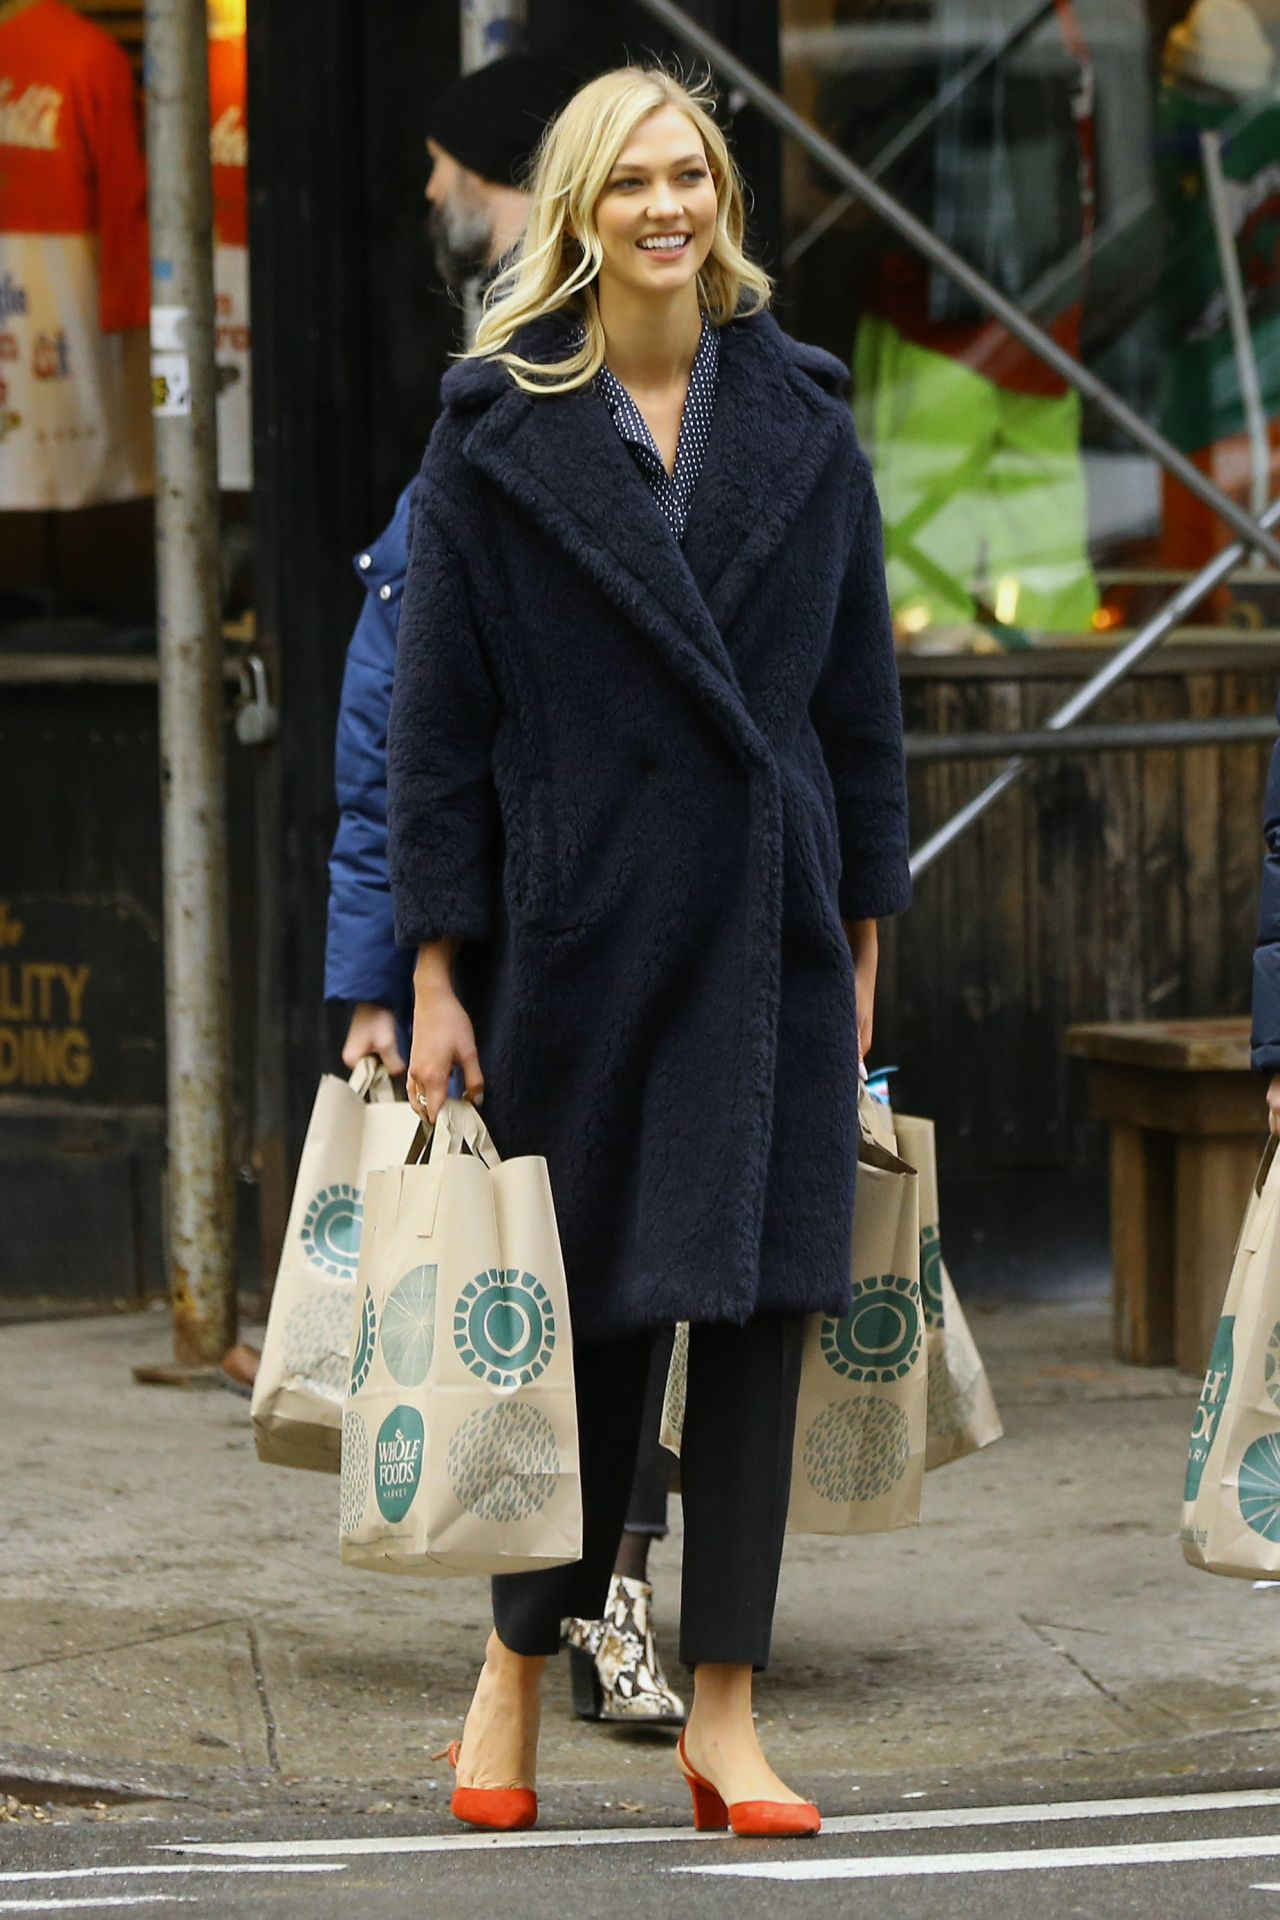 Karlie Kloss Shopping At Whole Foods In Nyc 11 30 2018